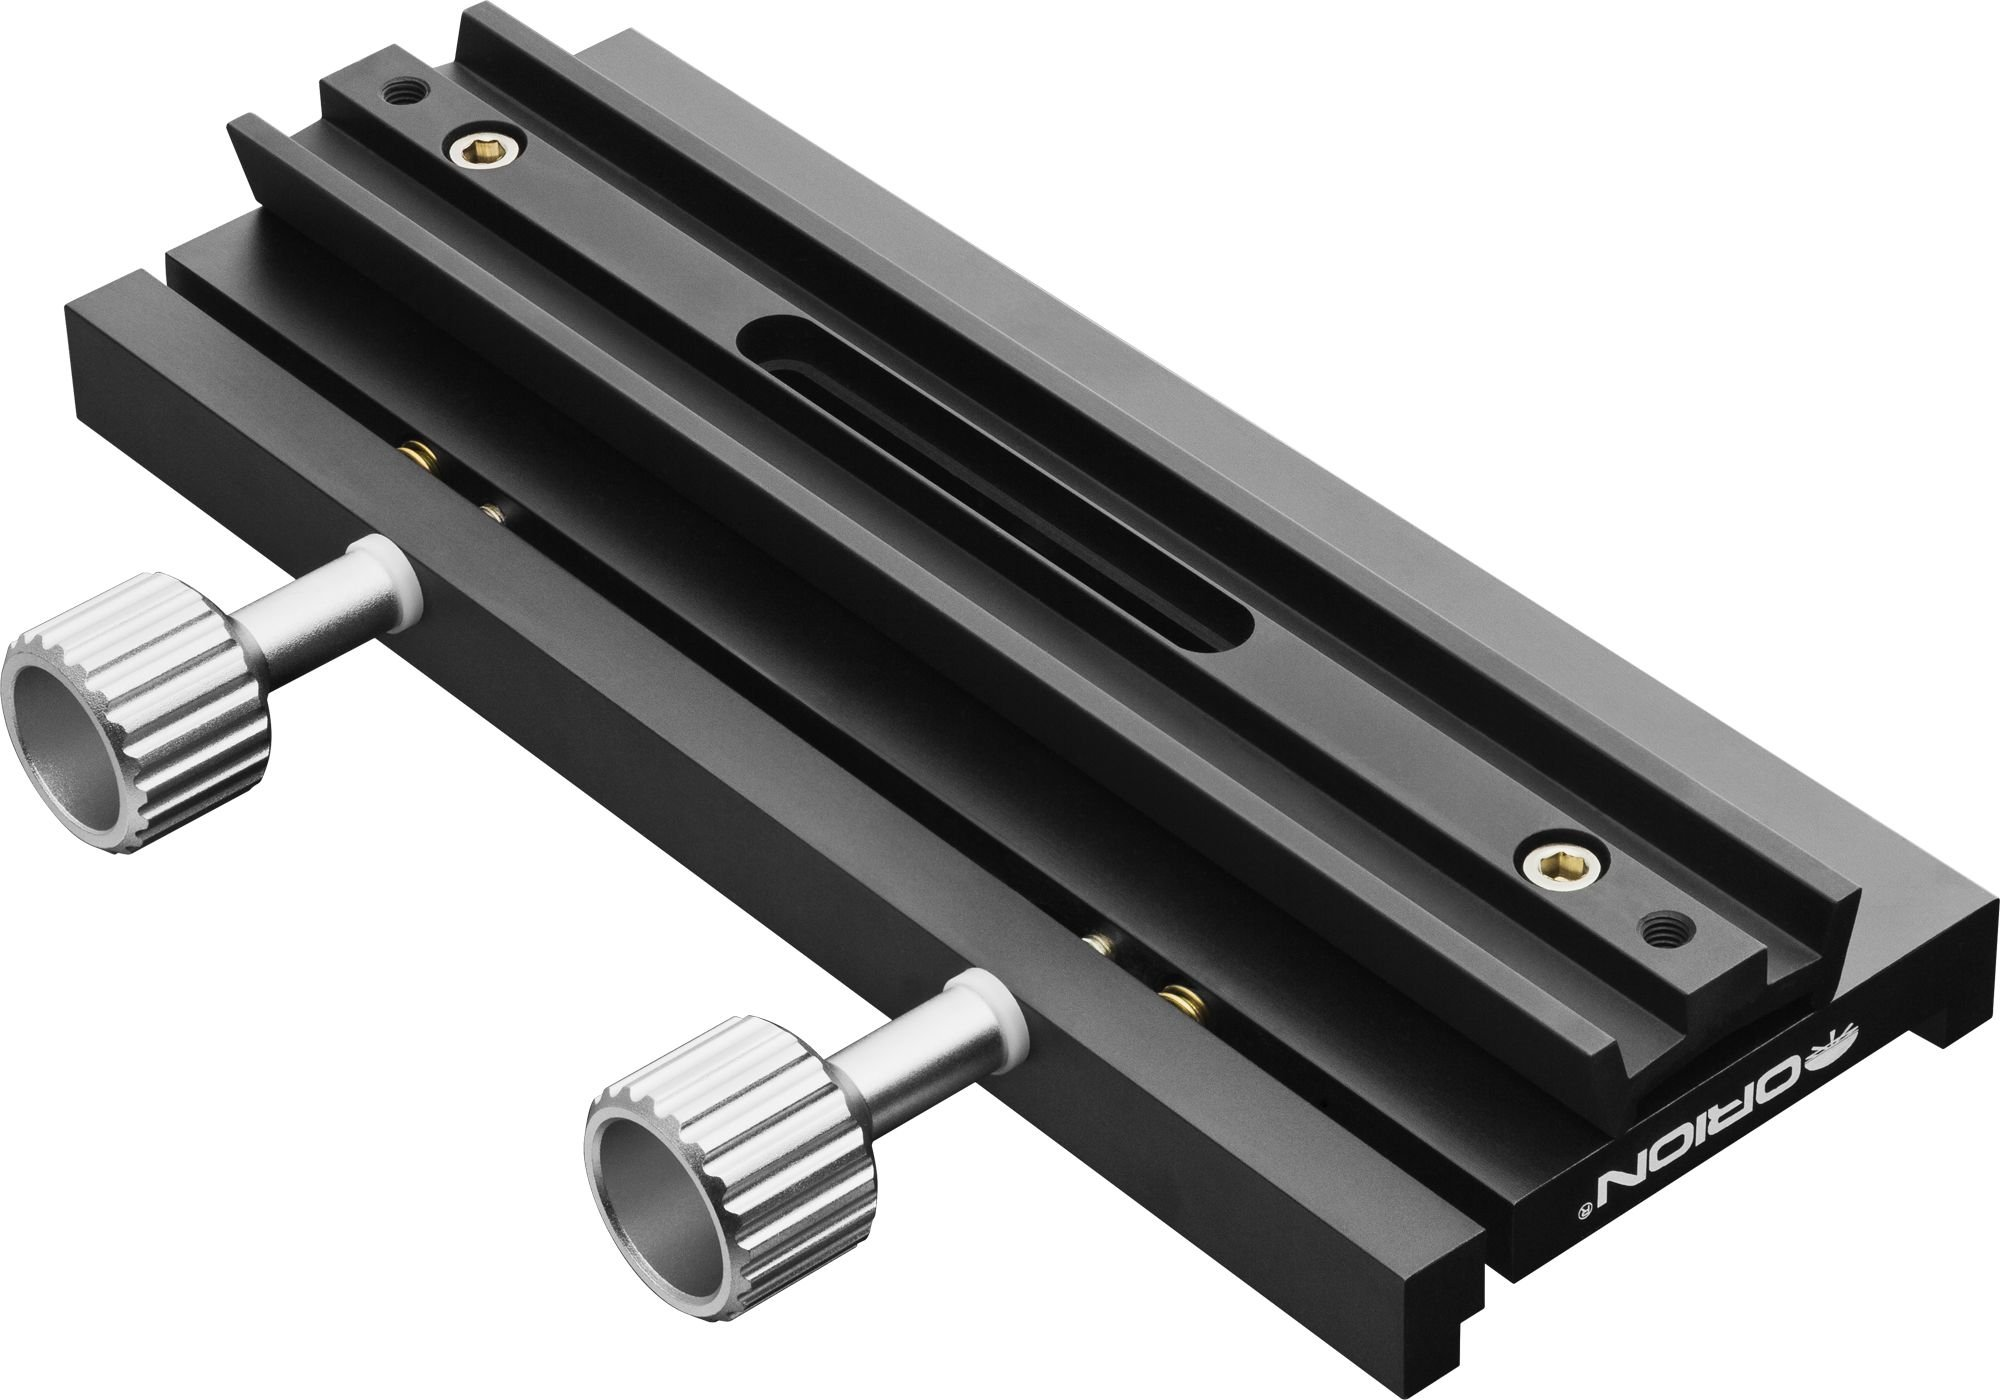 Orion 7952 Narrow-to-Wide Dovetail Adapter Plate by Orion